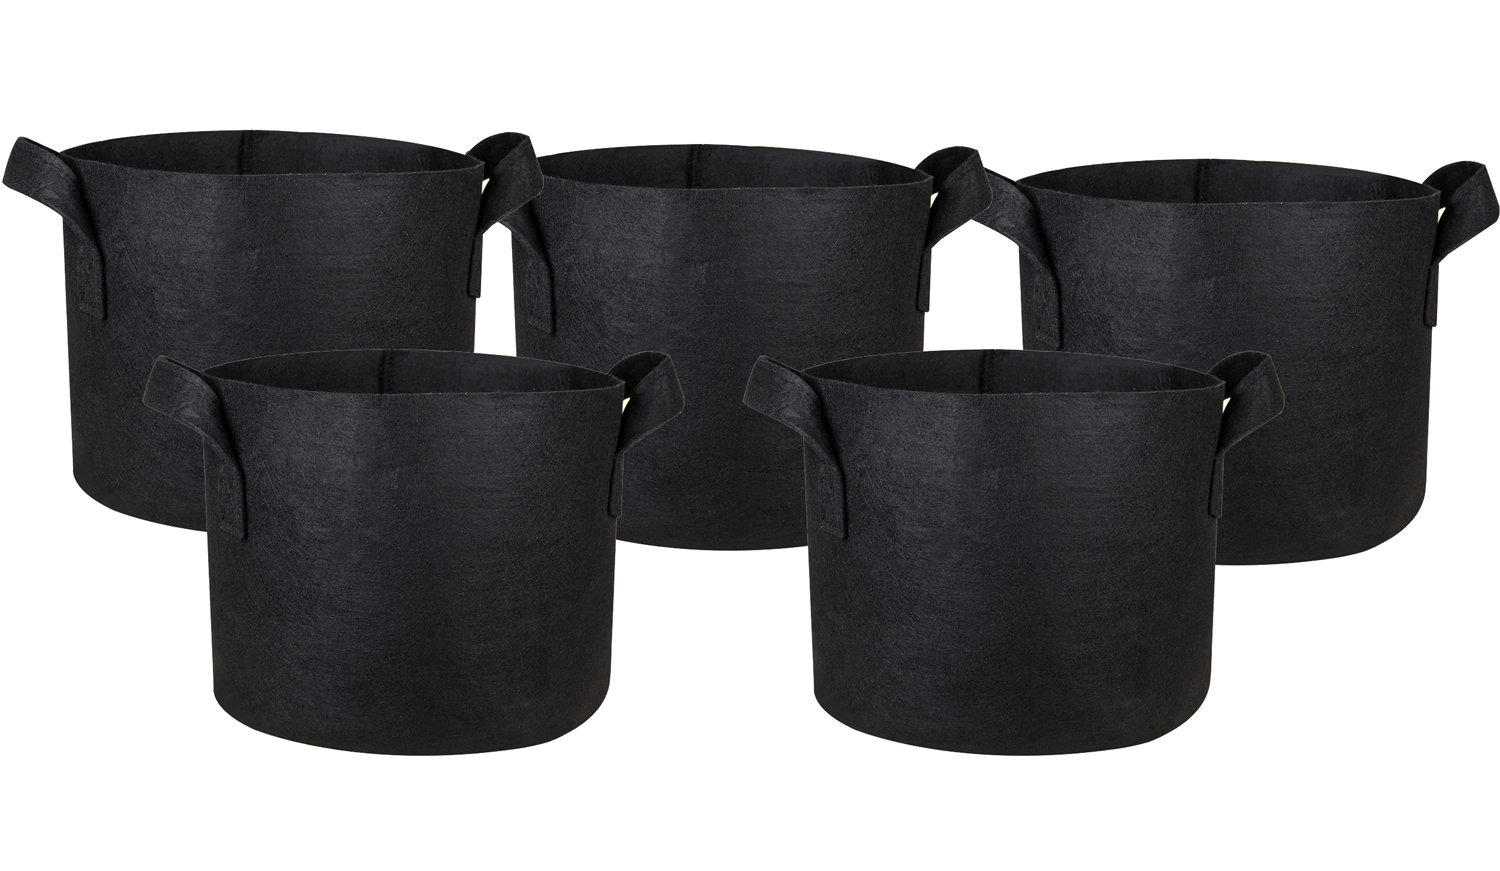 Hongville 5-Pack Grow Bags /Aeration Fabric Pots w/Handles (Black) (5-Gallons) by Hongville